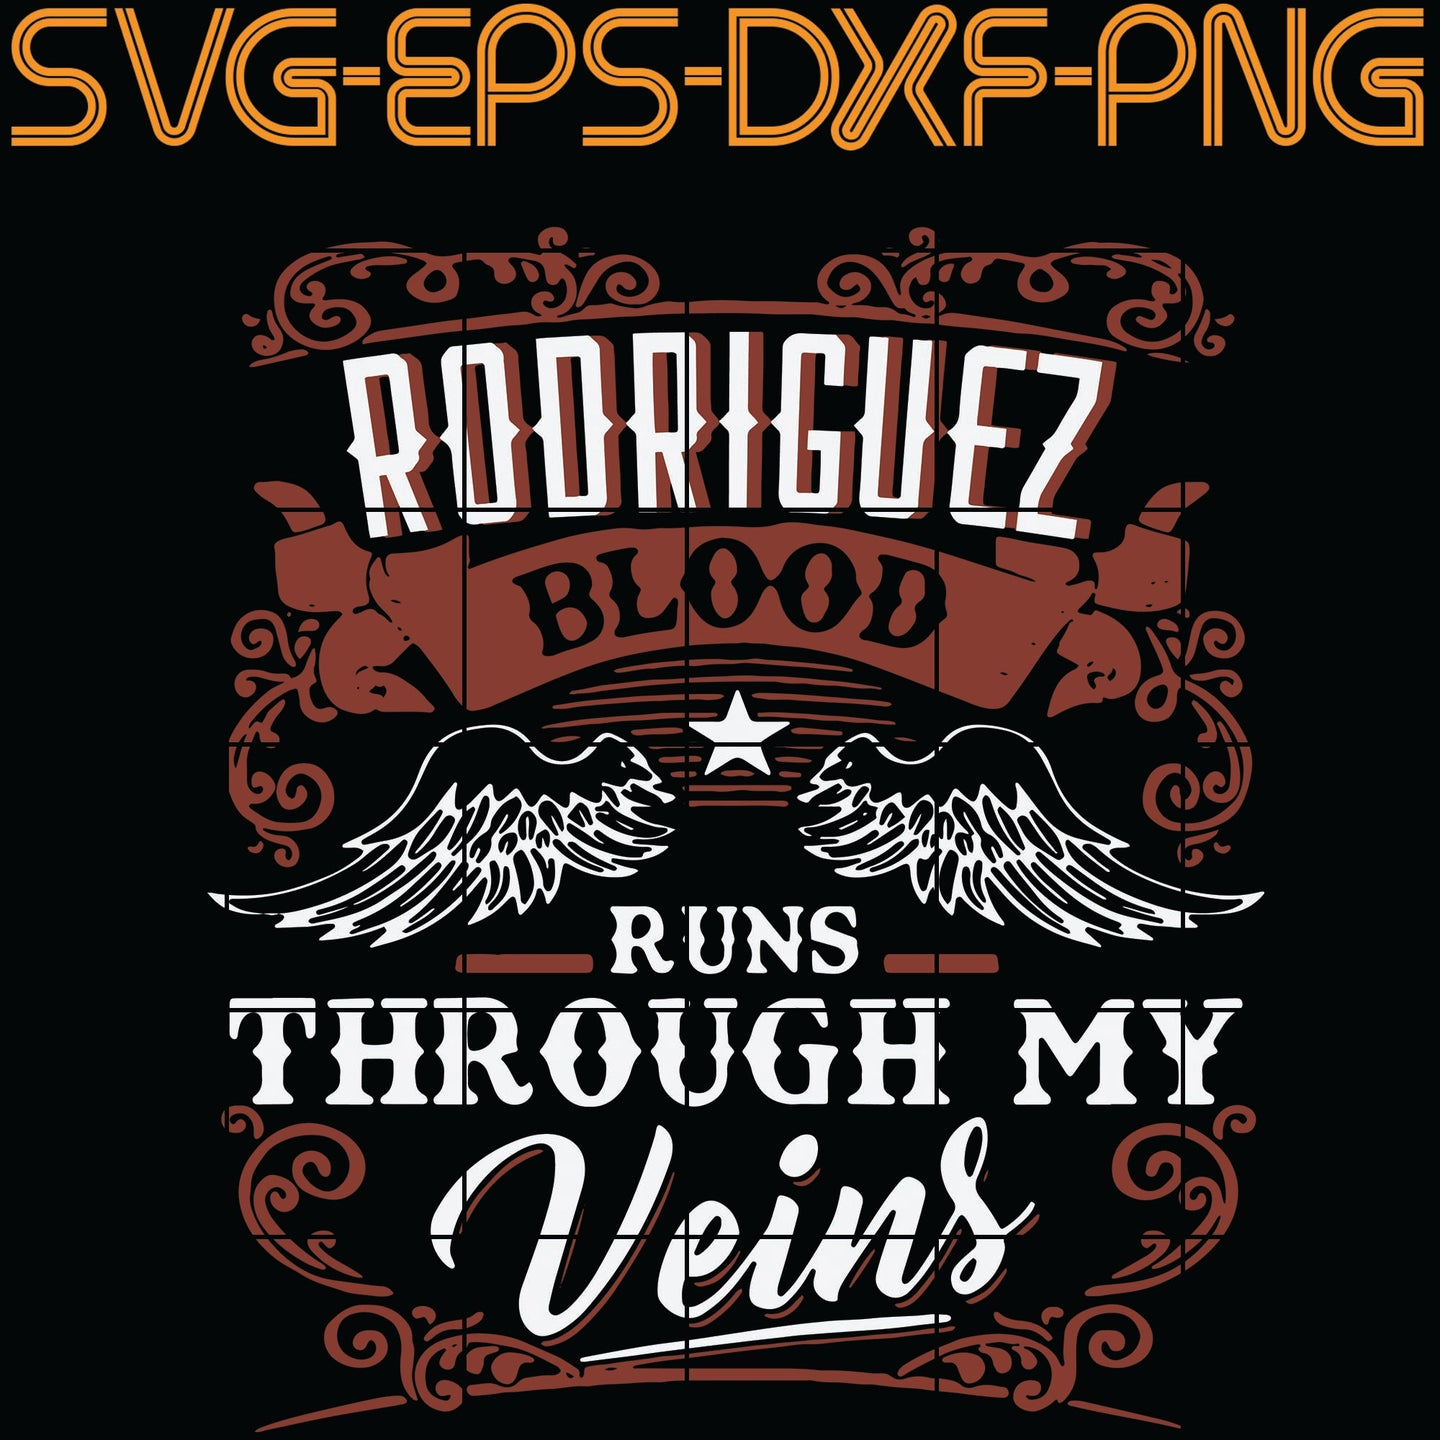 Rooriguez Blood Runs Through My Veins, Quotes, PNG, EPS, DXF, Digital Download